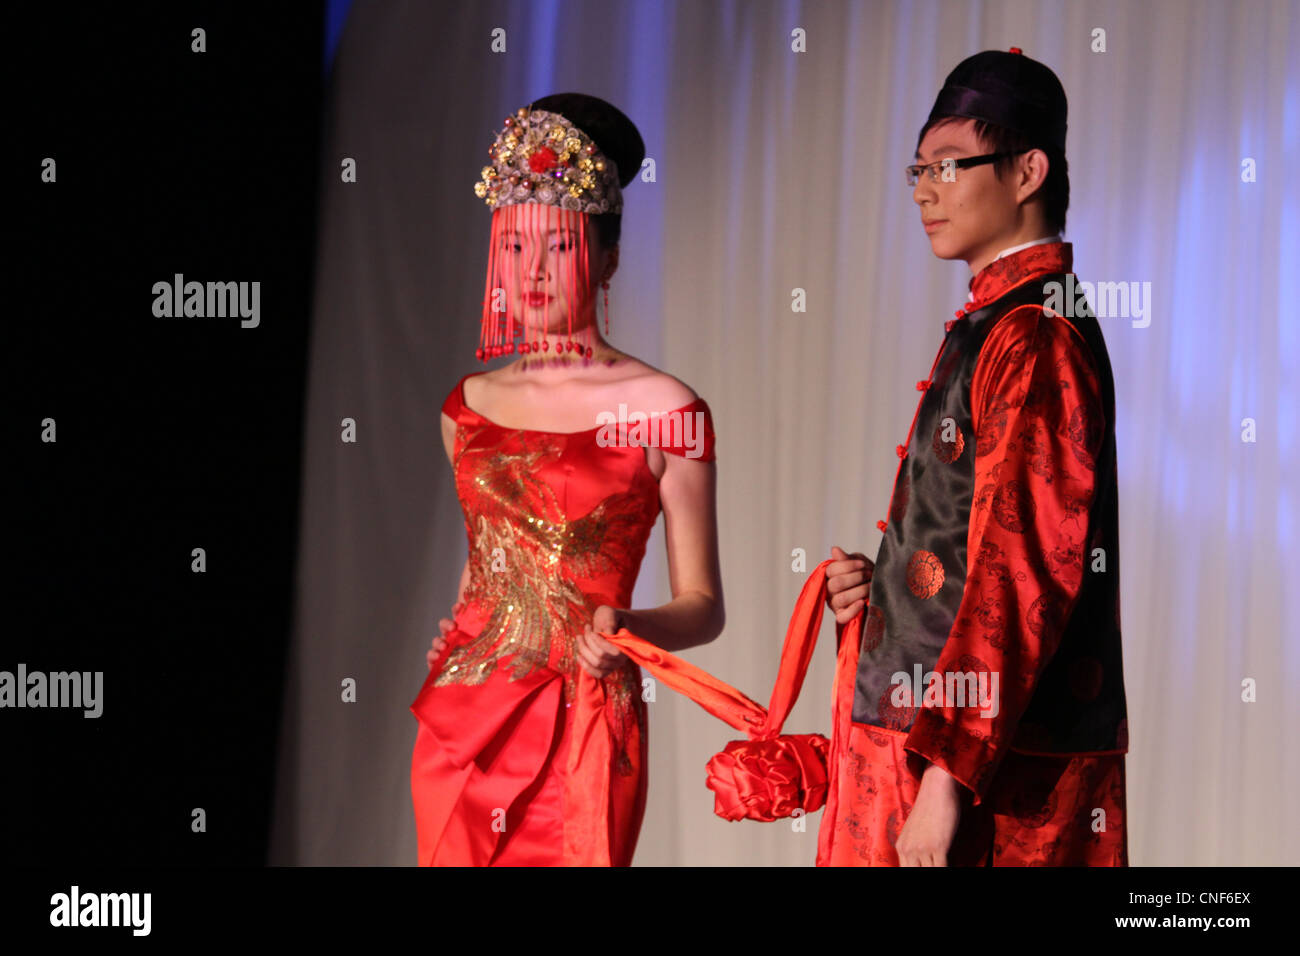 Traditional Chinese Wedding Outfits Couple Stock Photo Royalty